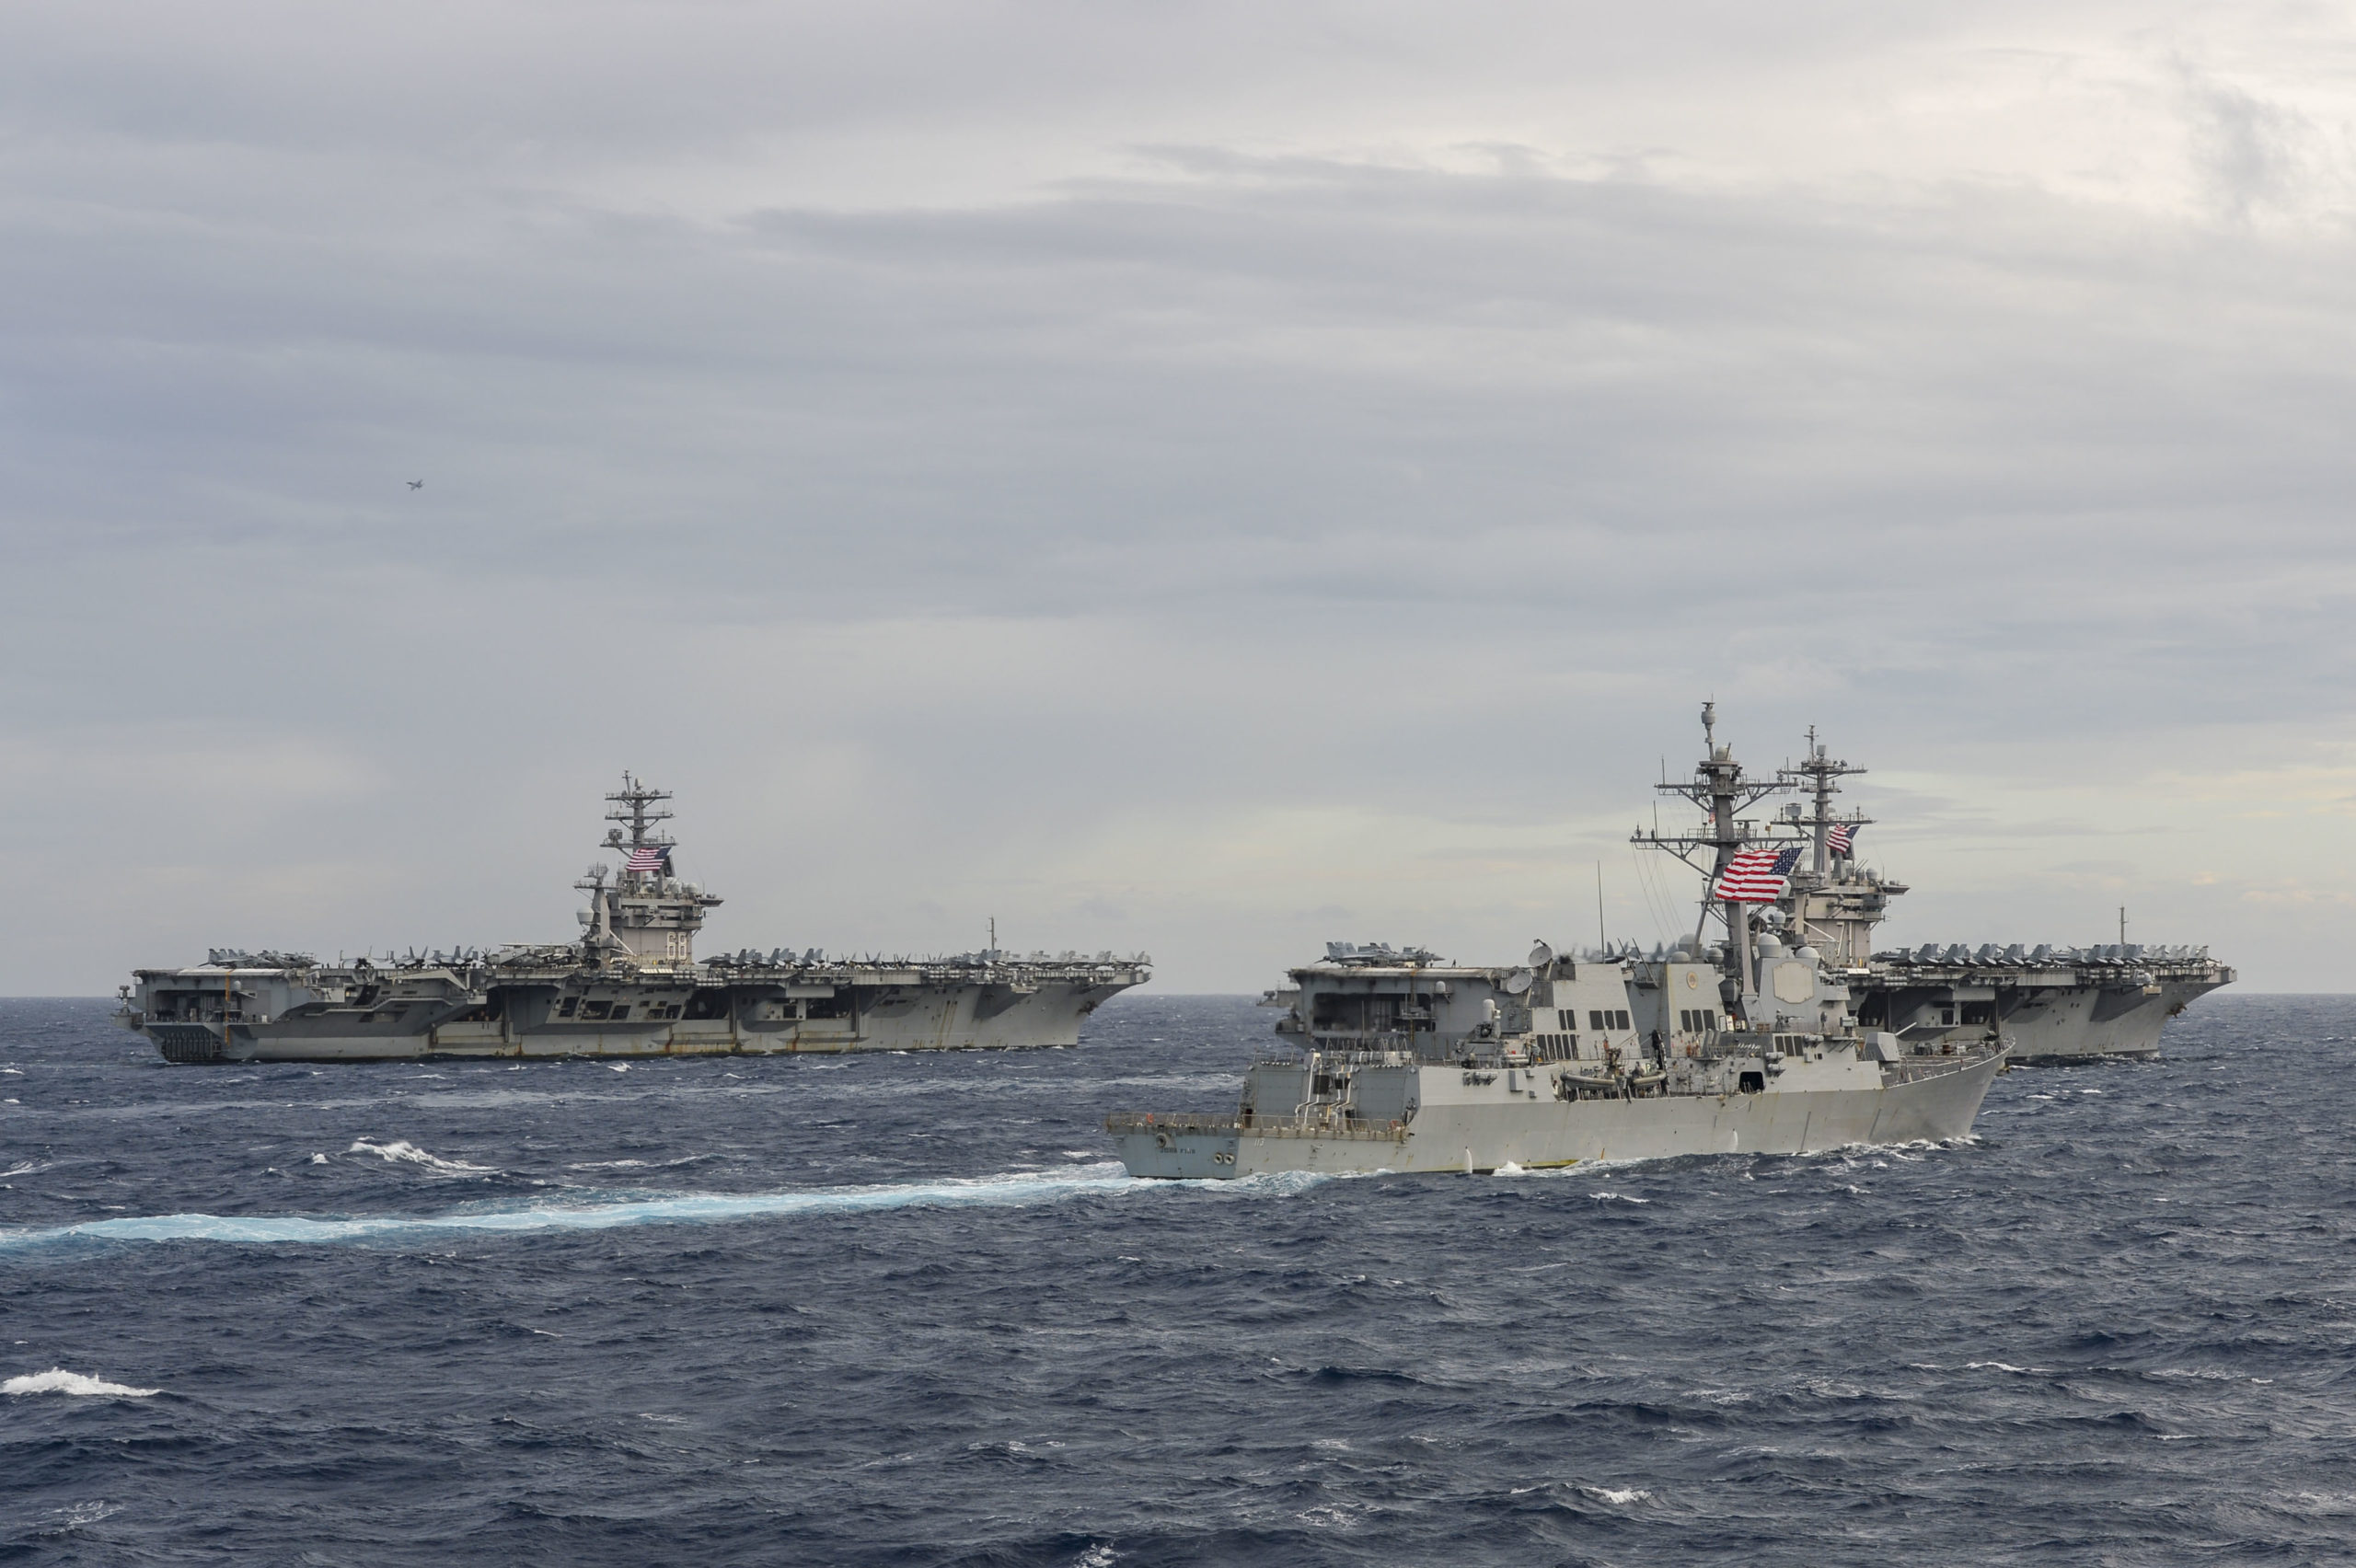 US Will Continue to Operate in South China Sea to Ensure Prosperity for All